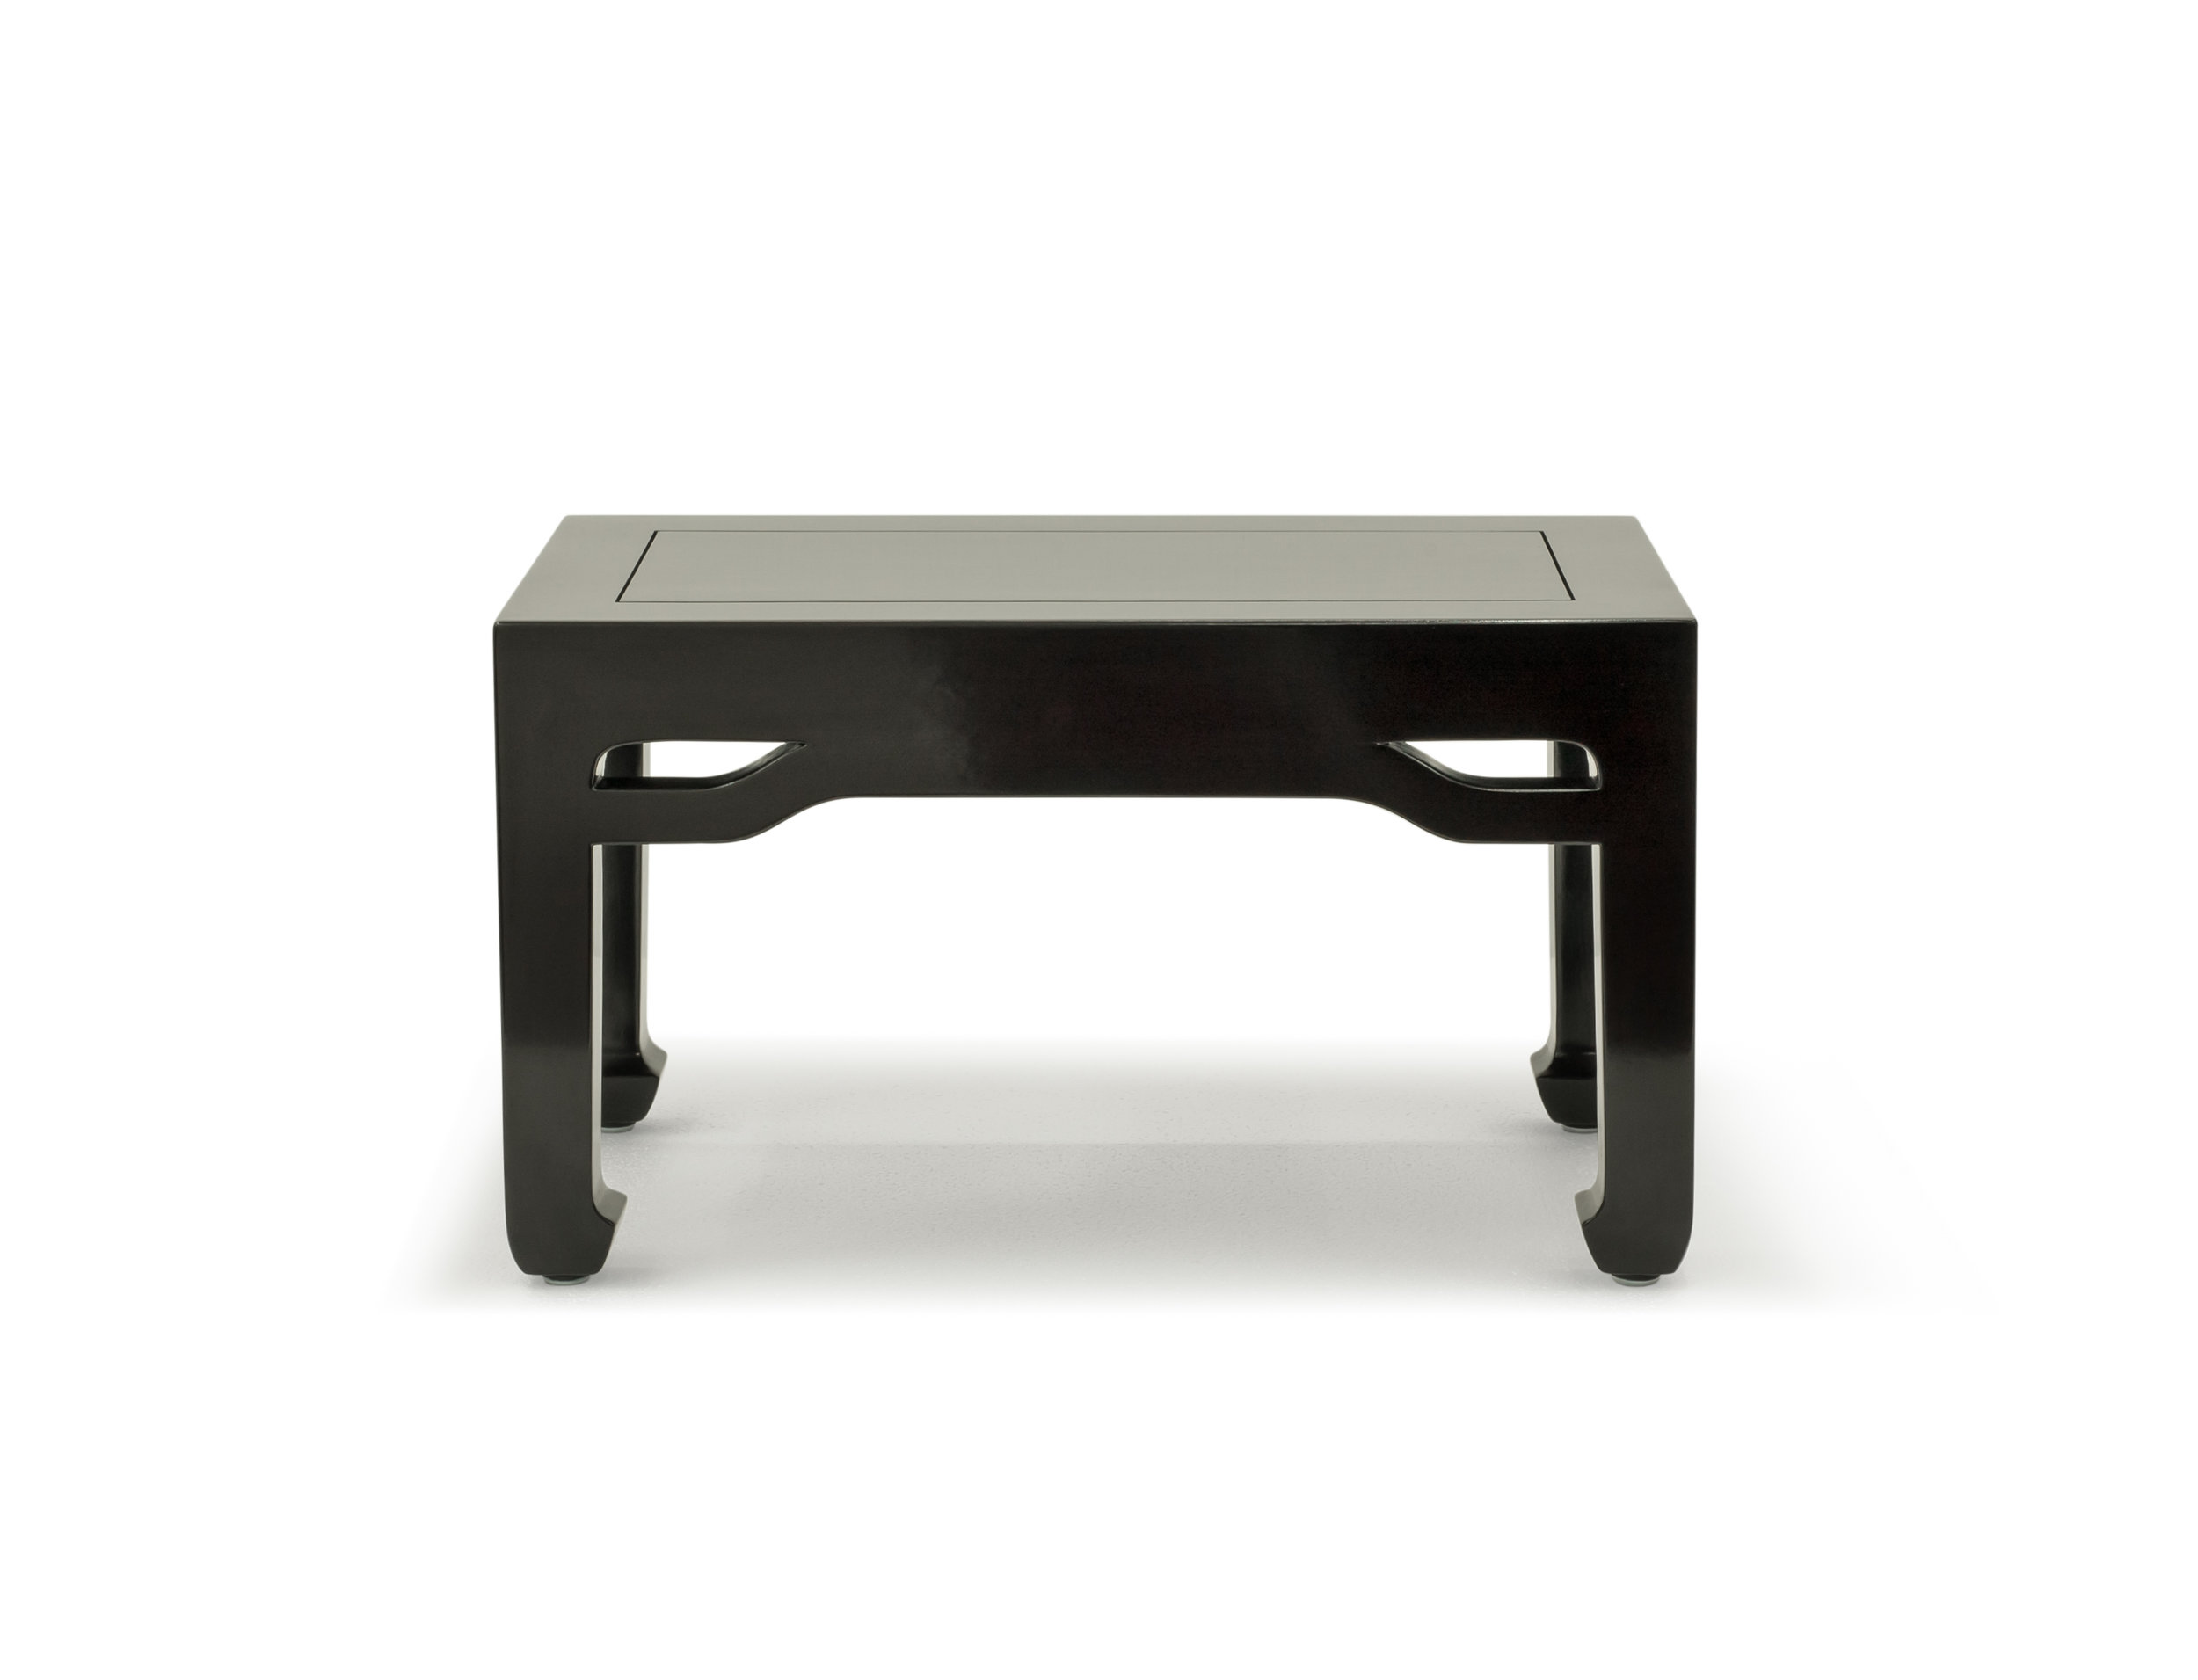 ....bespoke chinese furniture : low side table..特别定制设计中式家具 :矮台....